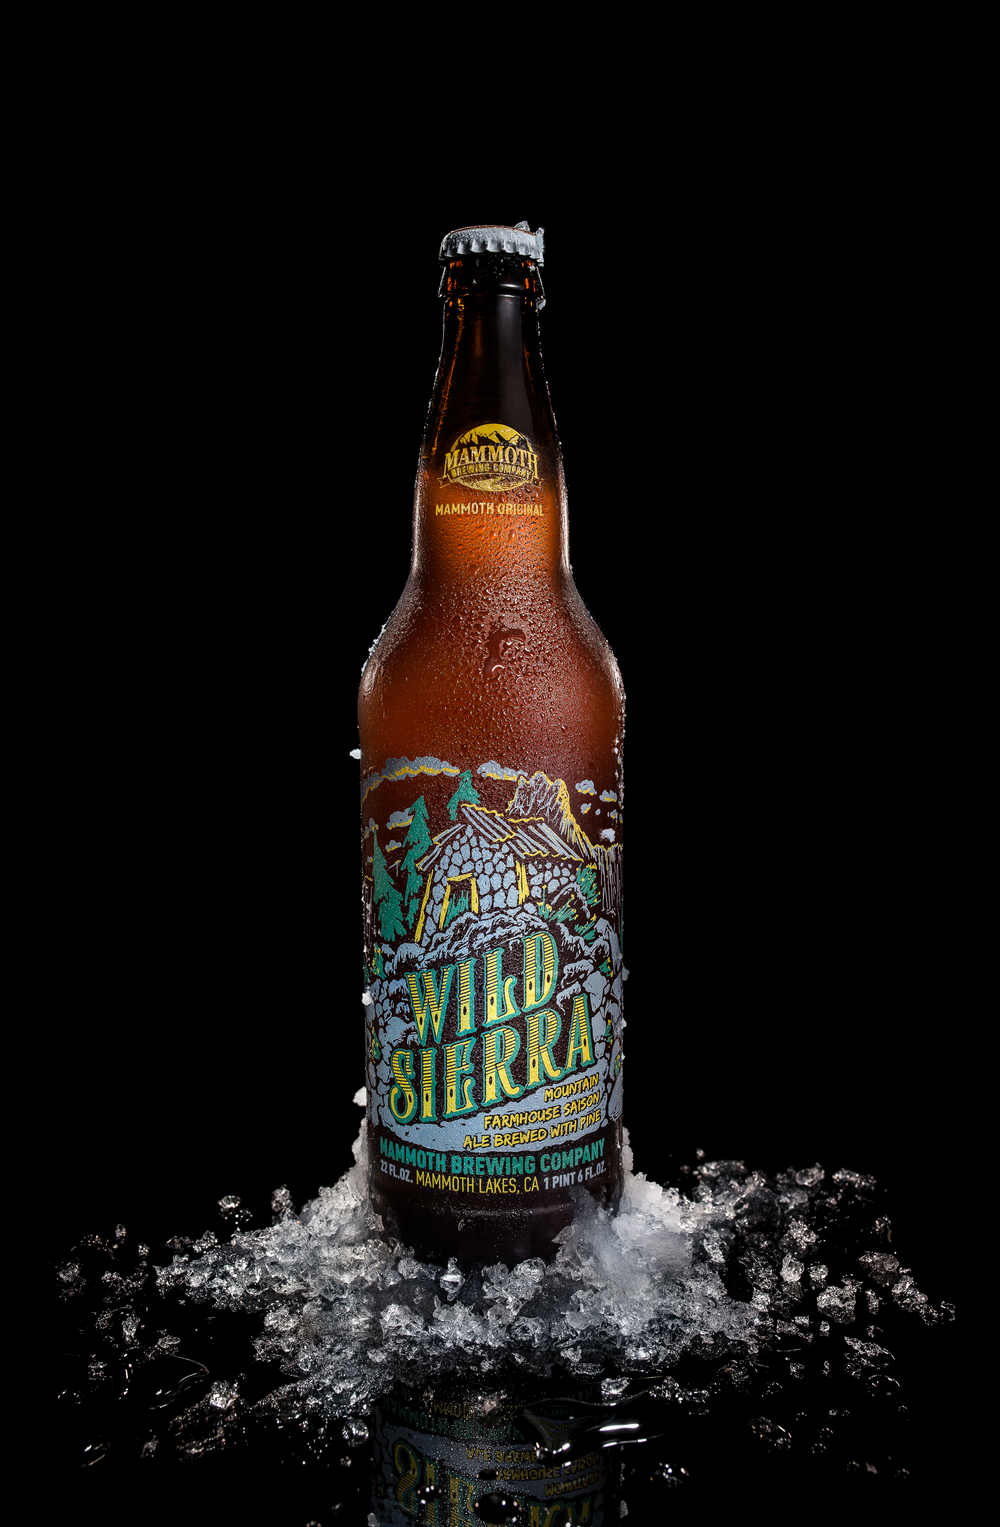 Mammoth-Brewery-Wild-Sierra-Final.jpg